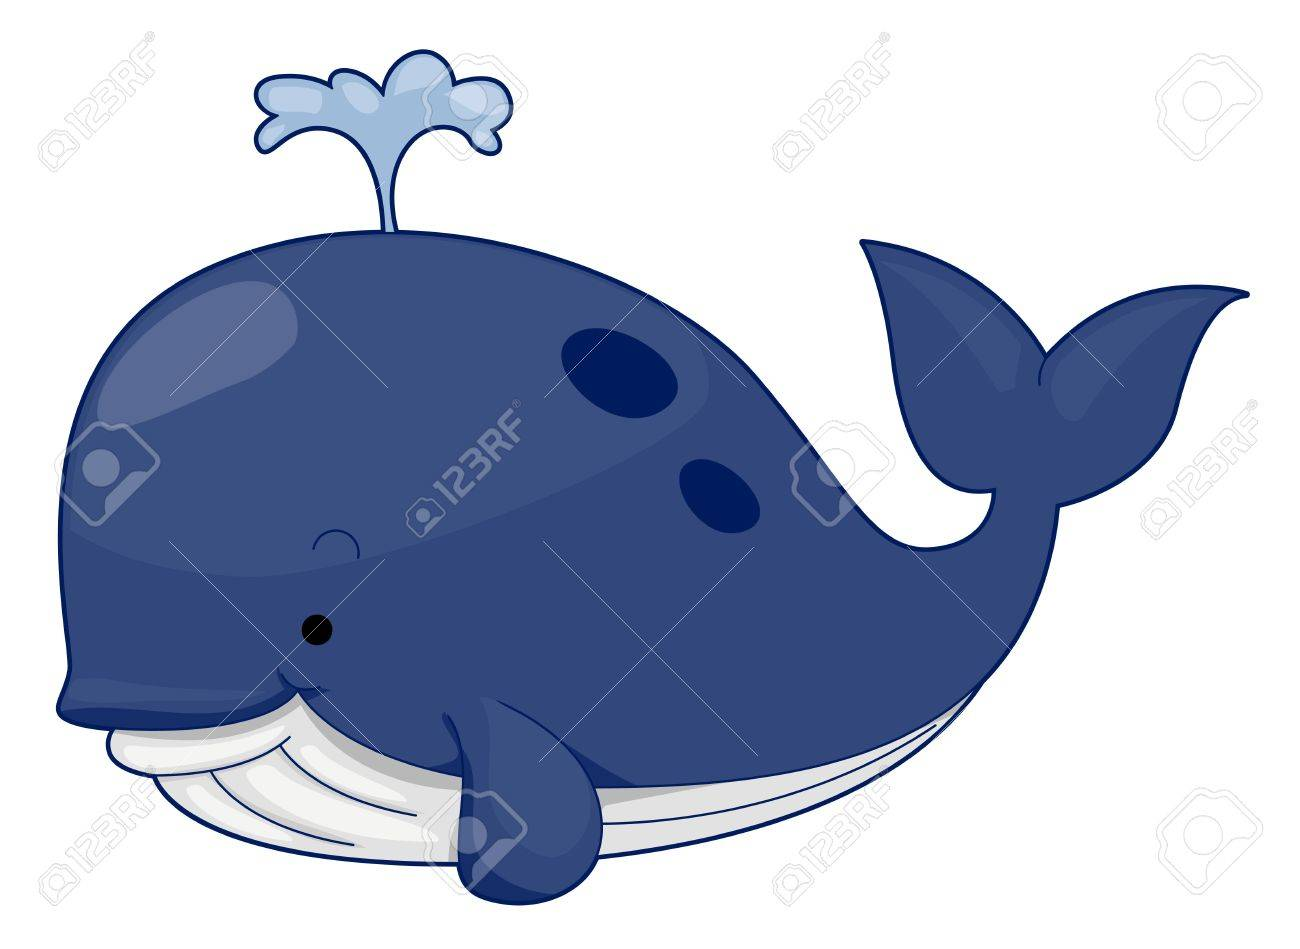 Cute whale in water cartoon isolated illustration stock photography - Cute Whale Stock Photo 7764878